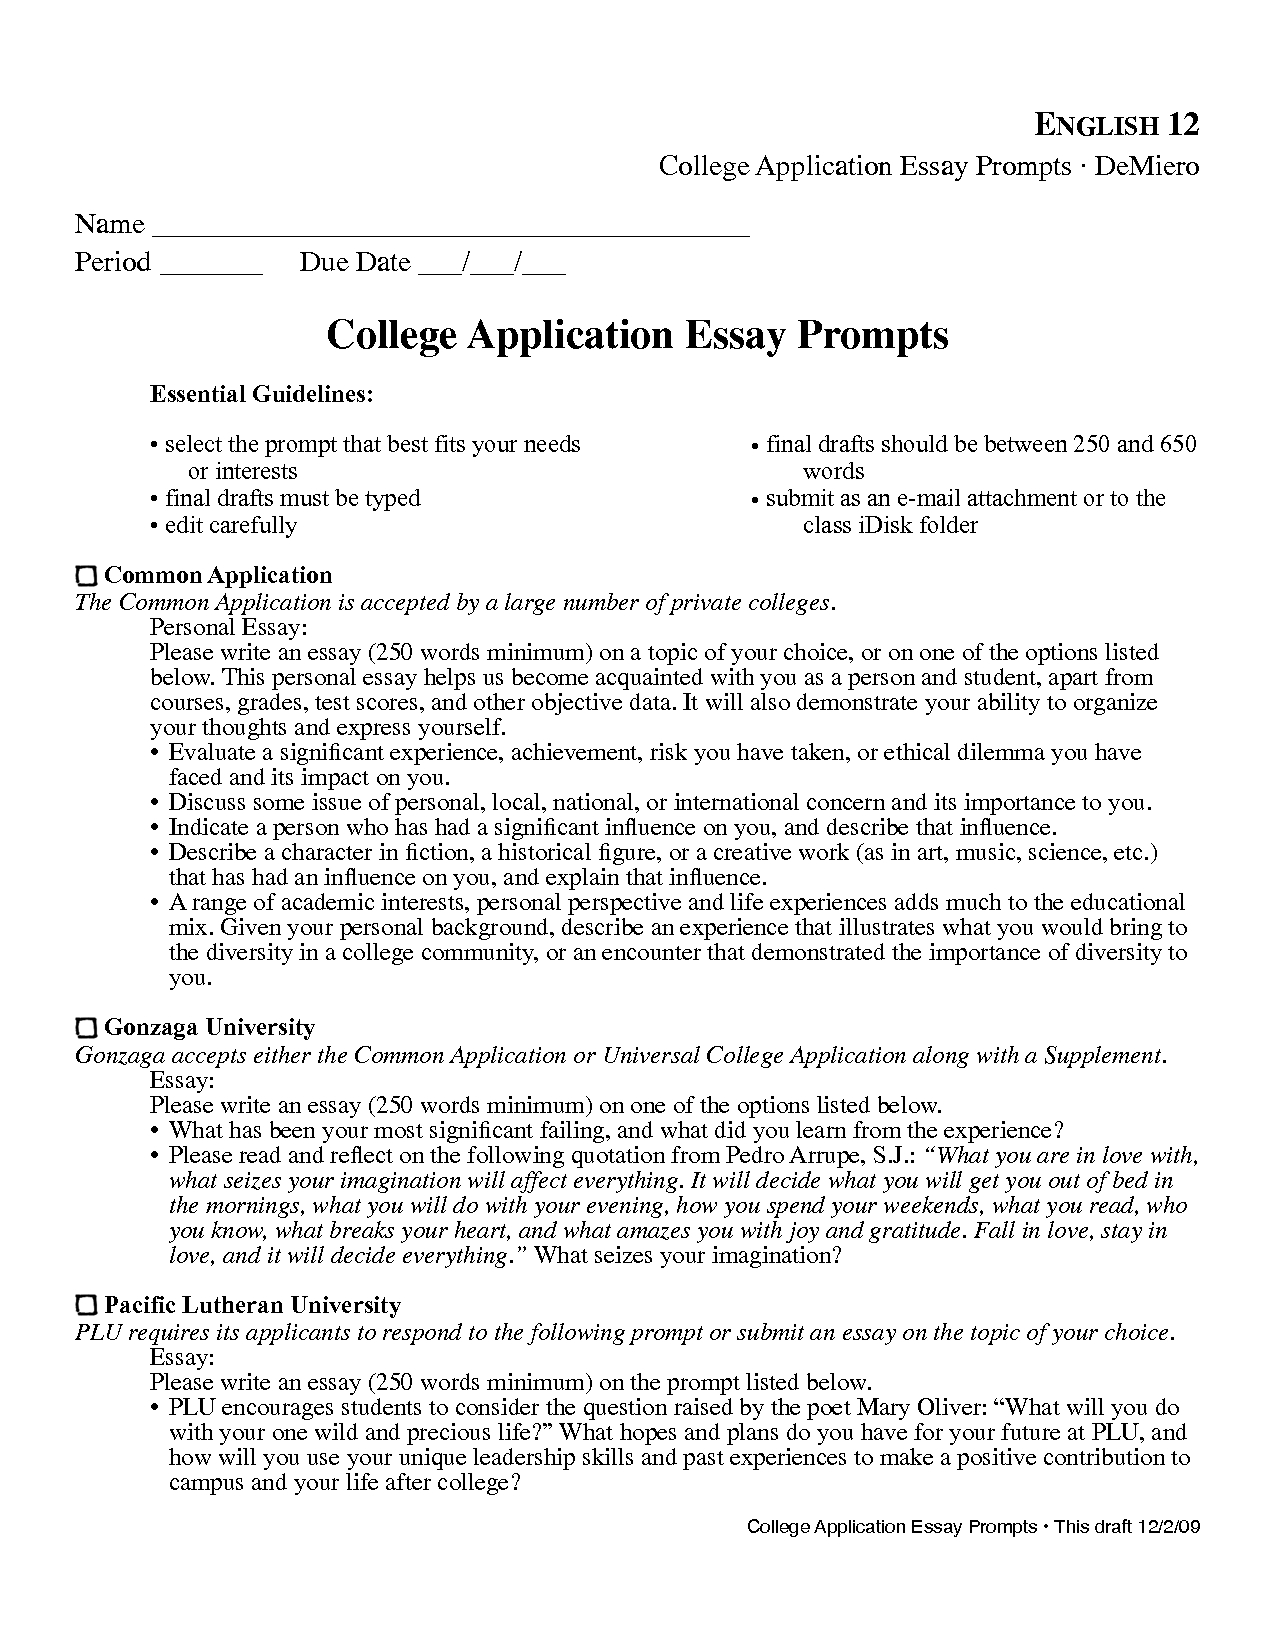 003 Essay Example Common App Prompt Prompts Provided By Application College Confidential Physic Minimalistics Co Inside Format Unusual Examples 4 Word Limit Full